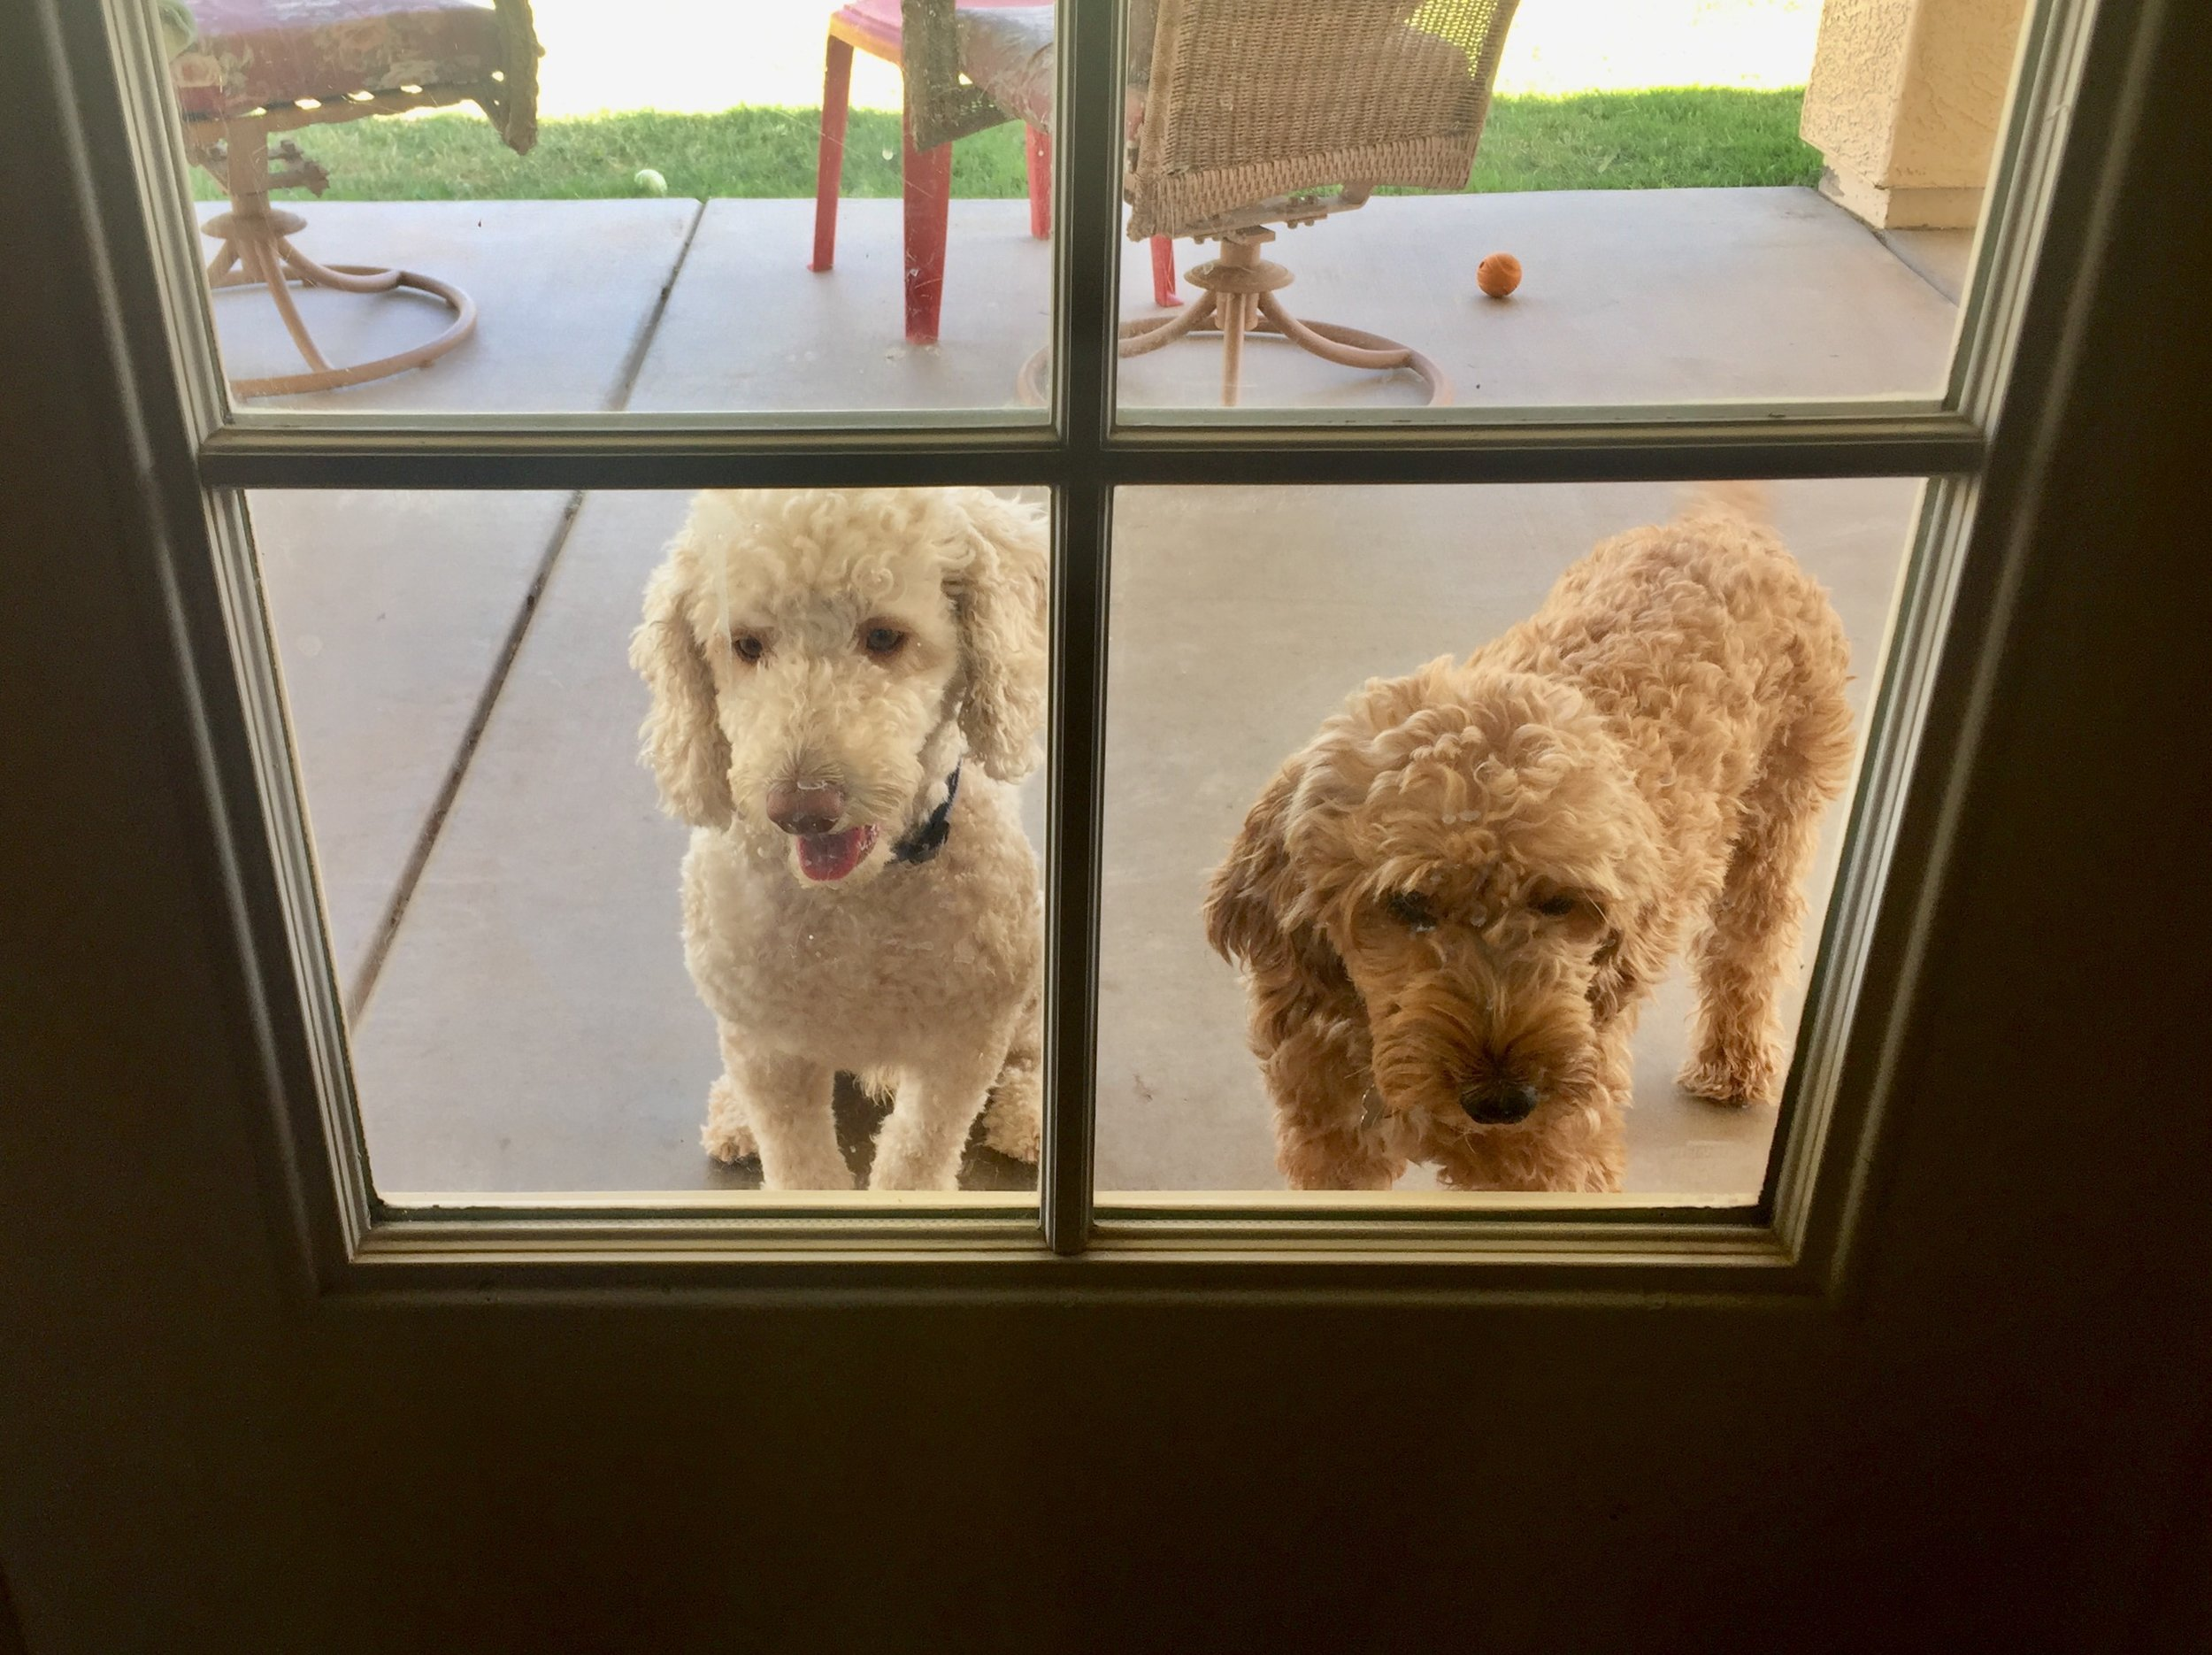 Papa McQueen on the left and Mama Lucy on the right watch through the back door window as Matthew and I pick up Lizzie at 8 weeks of age from Crawford Doodles.